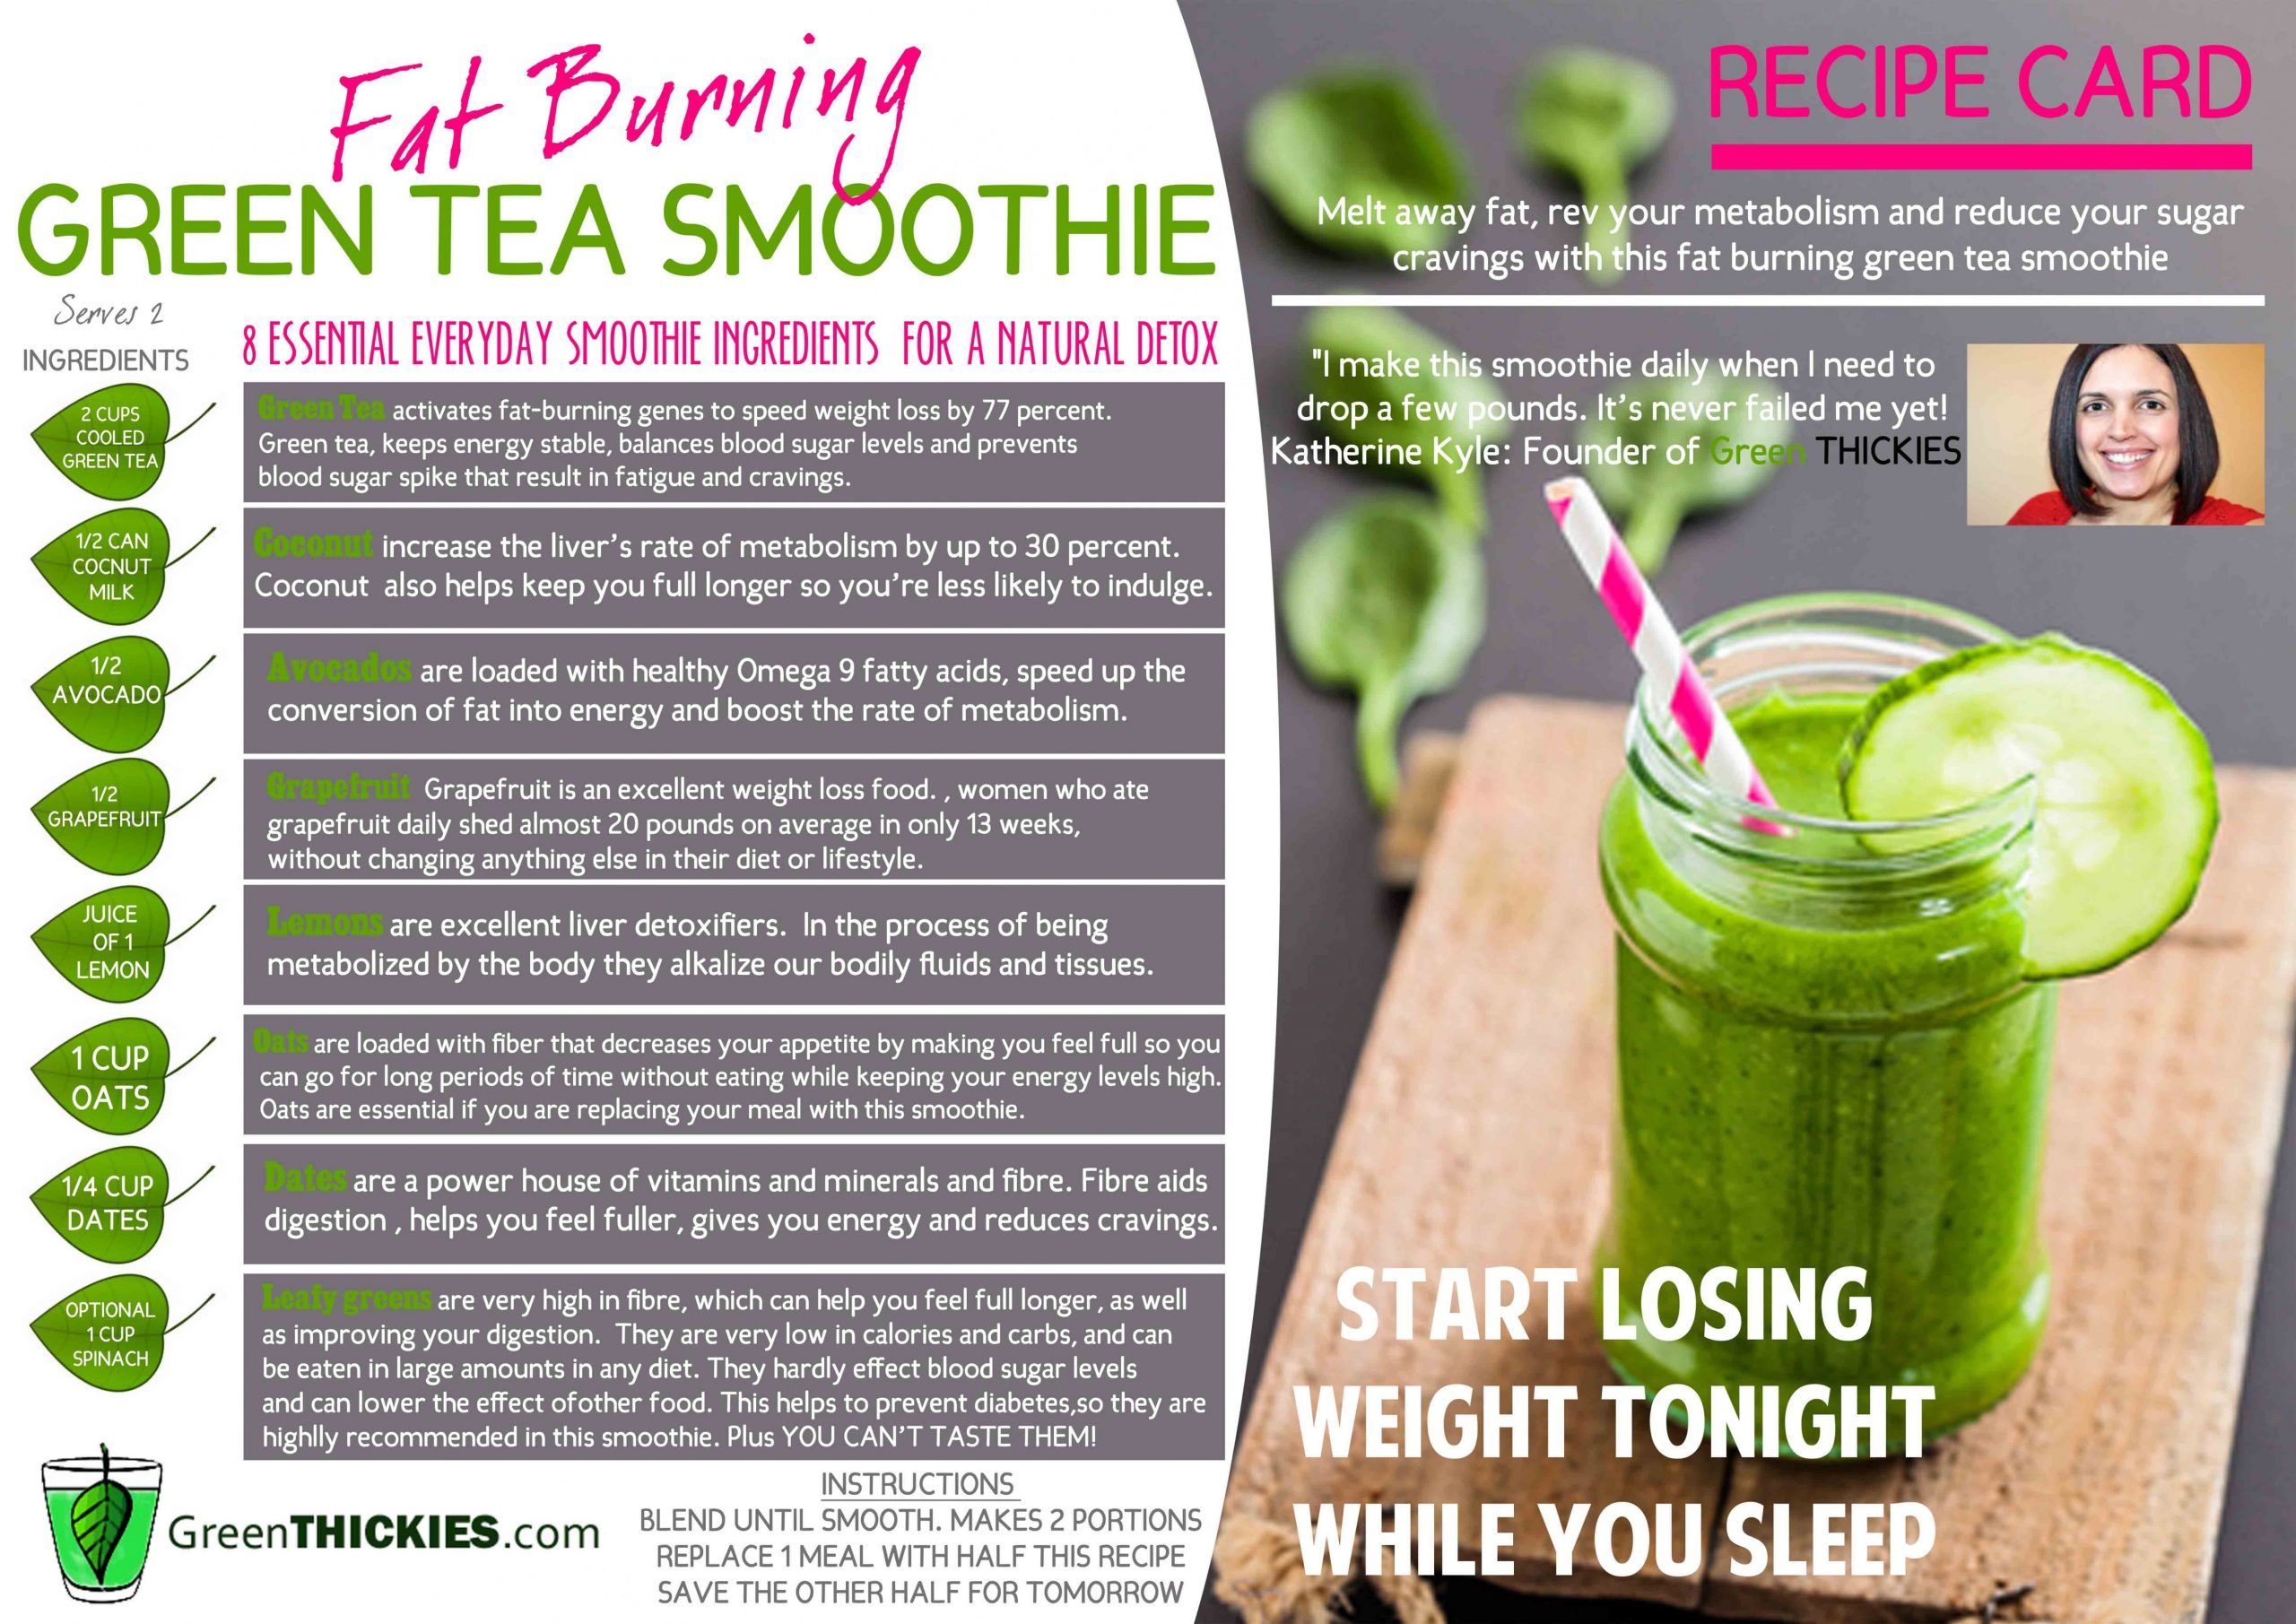 Healthy Weight Loss Smoothie Recipes Uk - Image Of Food Recipe